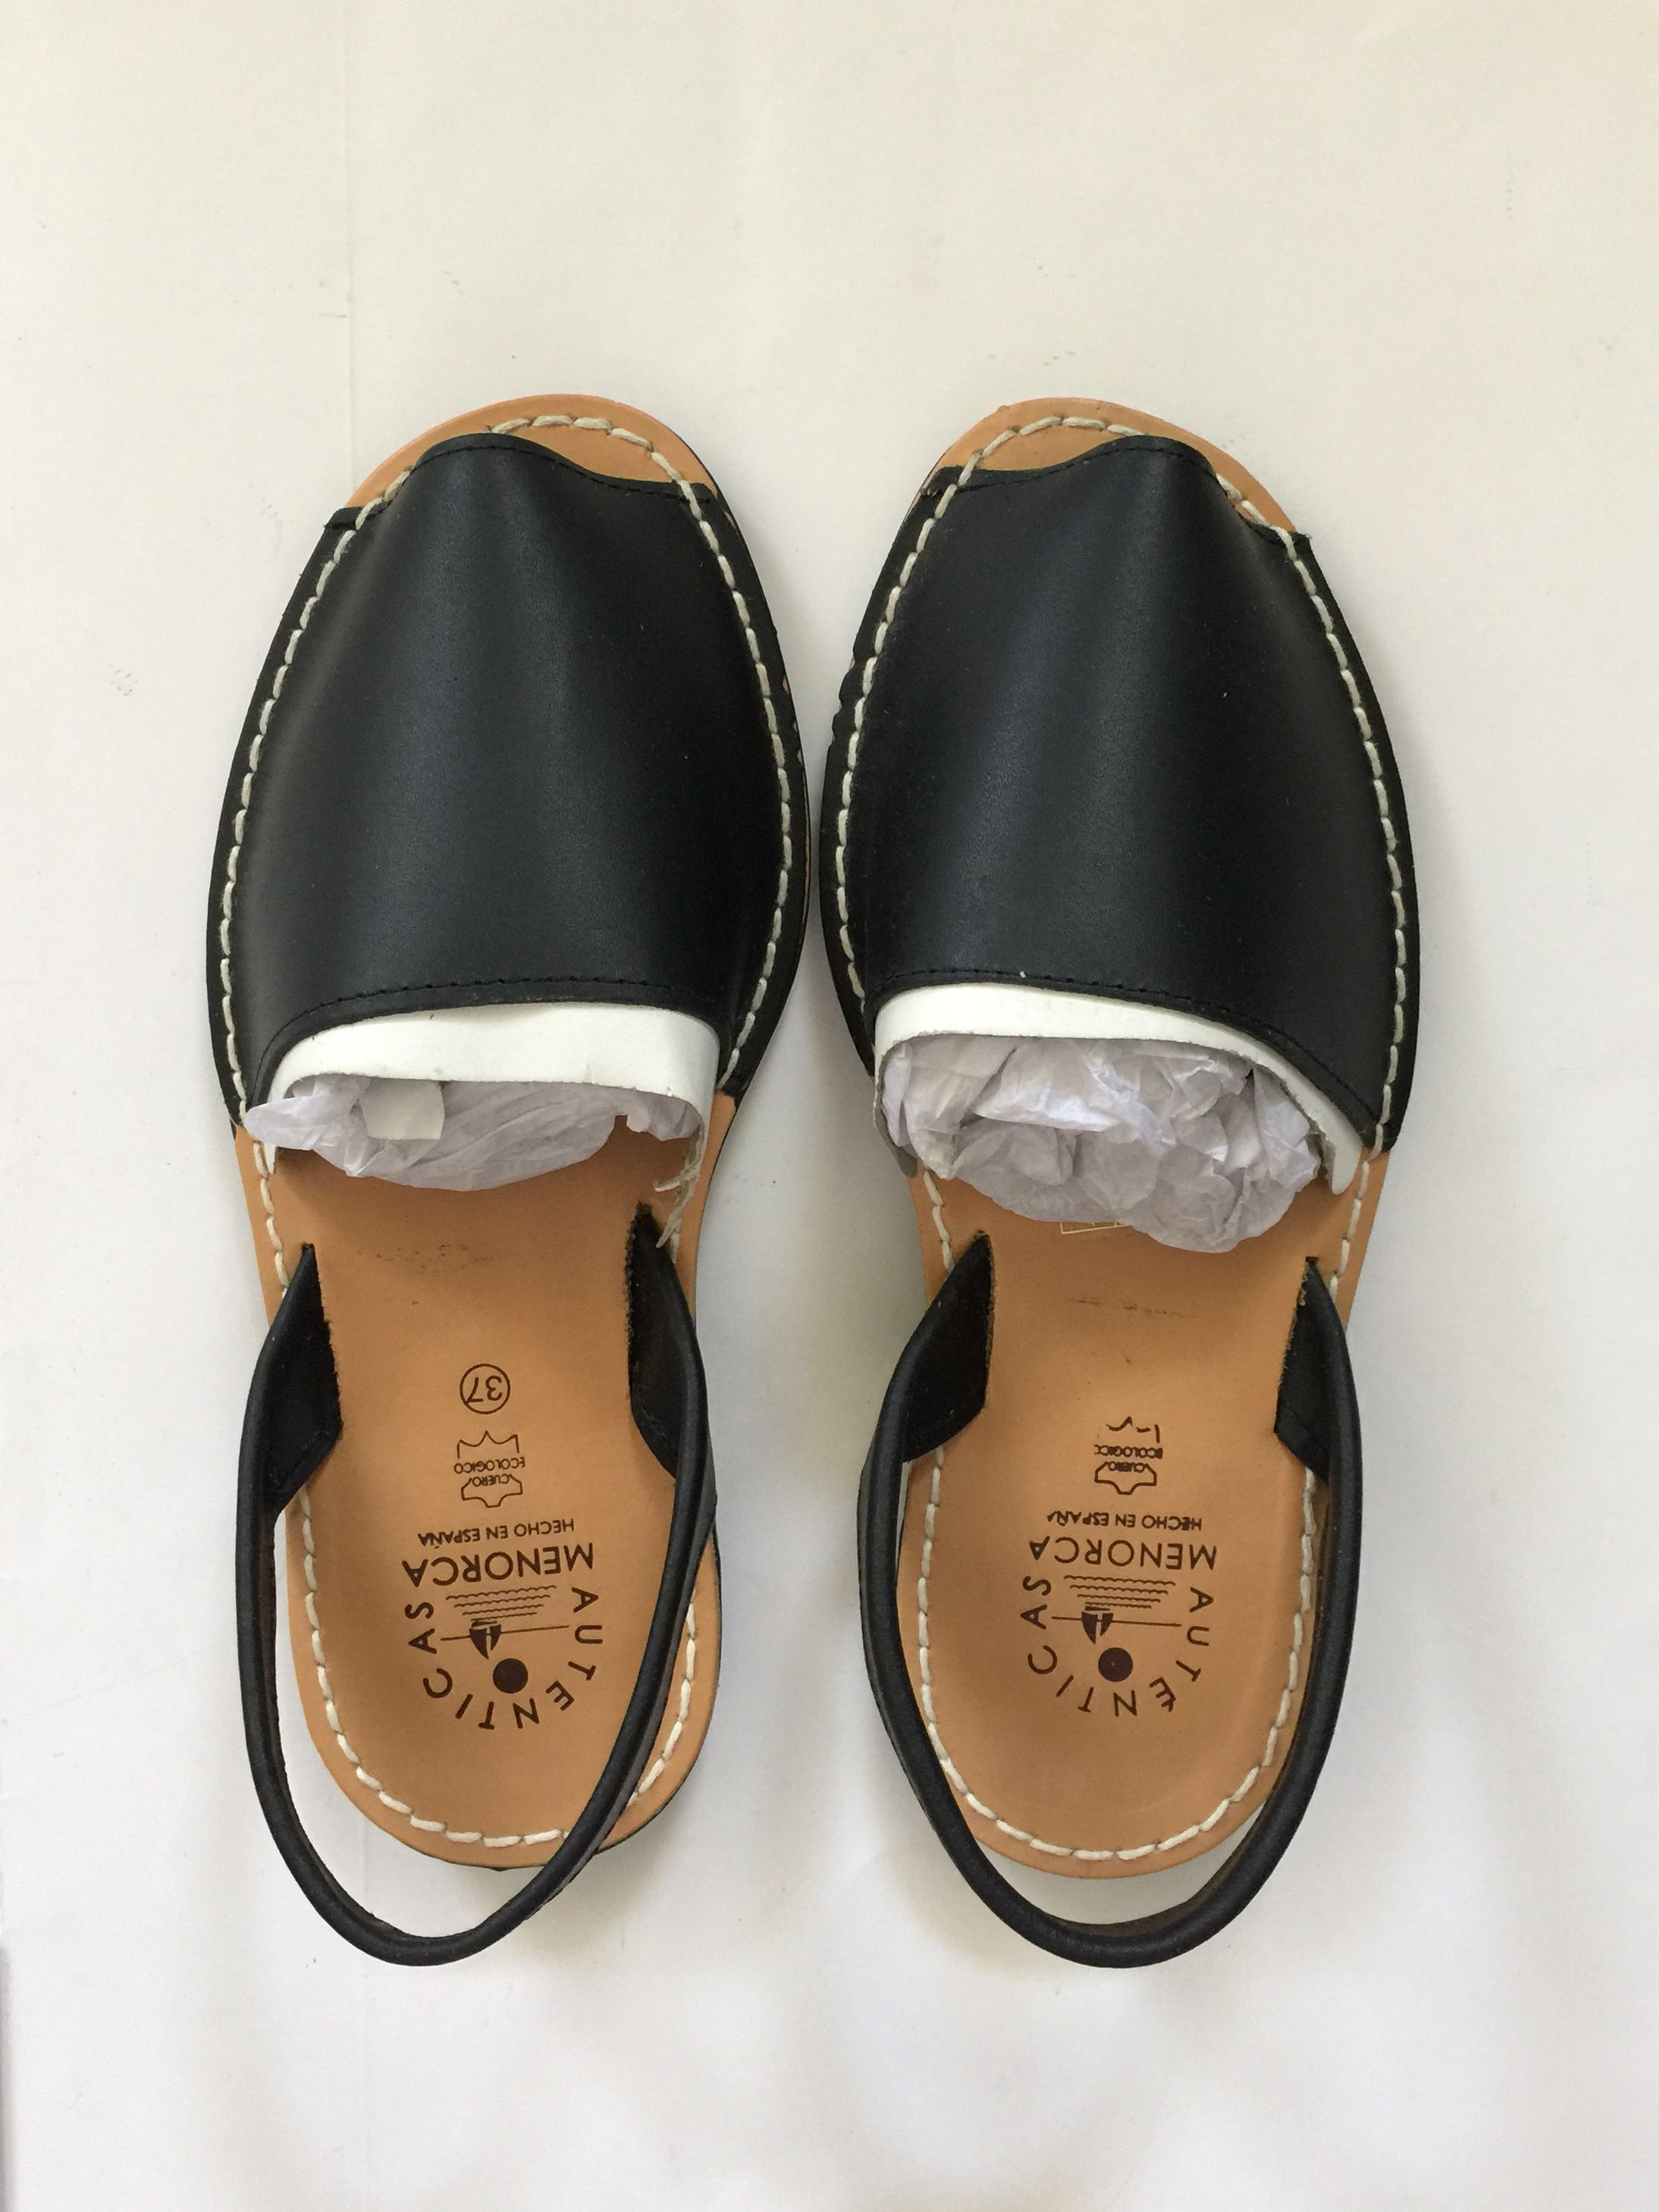 Leather Sandals Menorca Menorca Spanish Sandals Leather Menorca Spanish Leather Sandals Spanish E2DIYeW9H